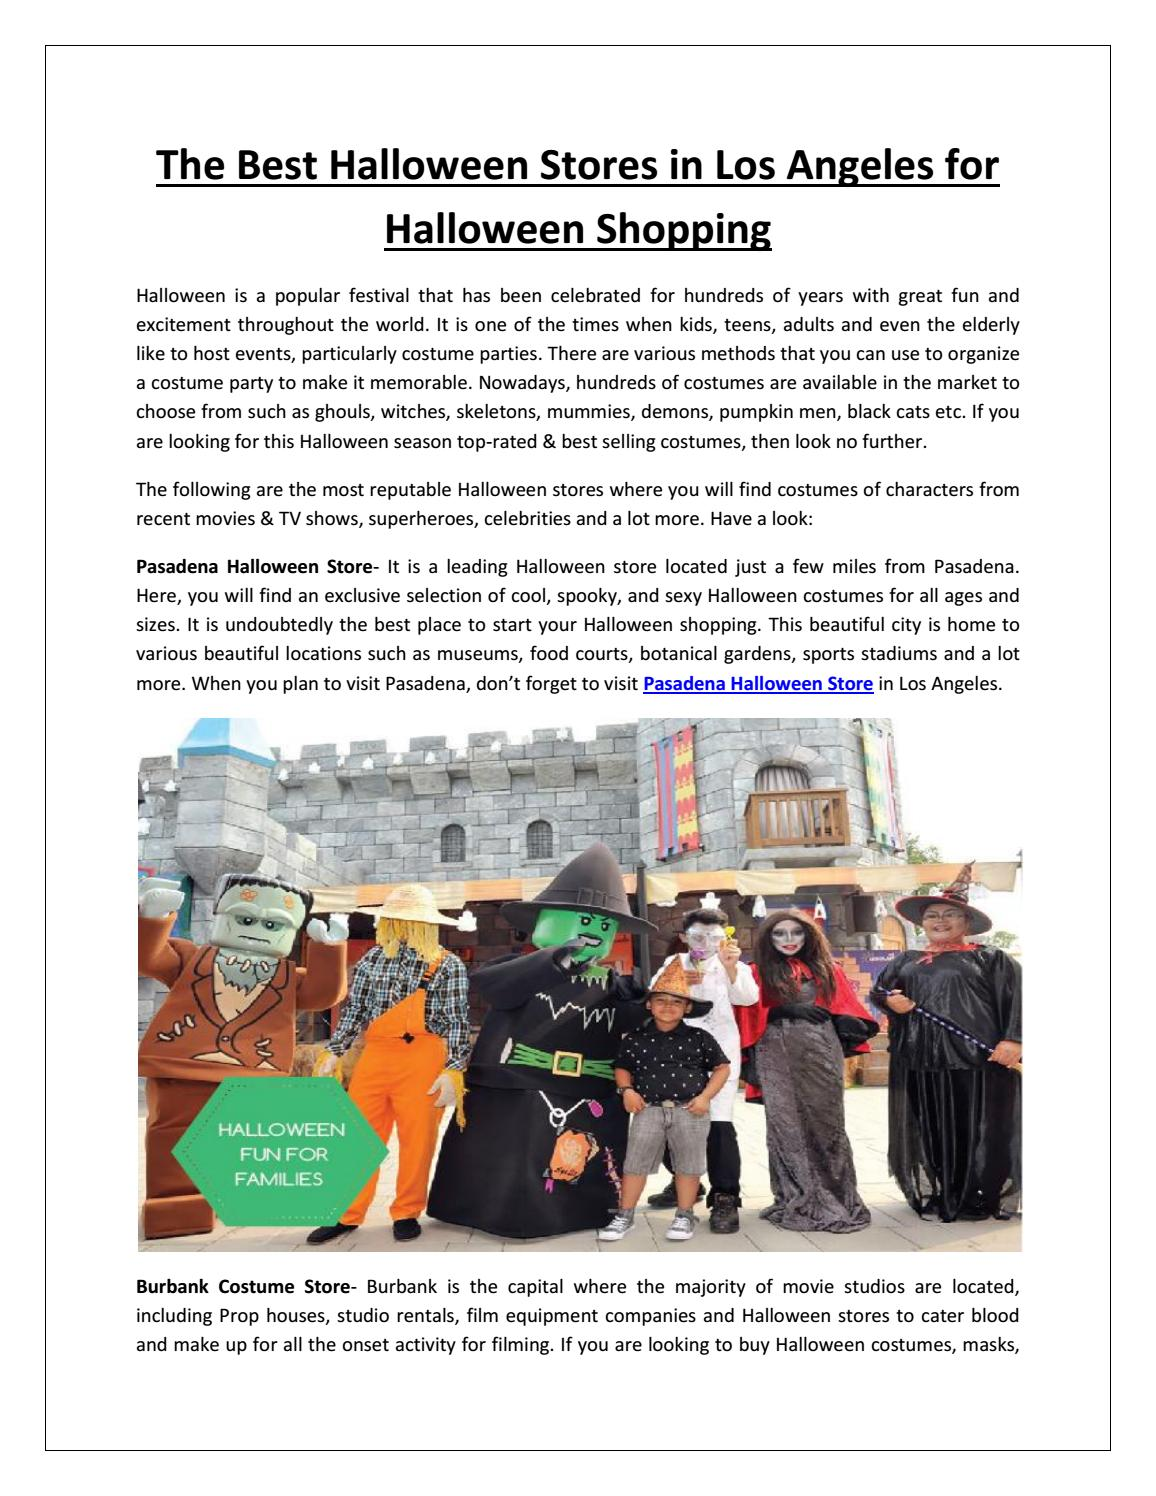 The Best Halloween Stores in Los Angeles for Halloween Shopping by ...